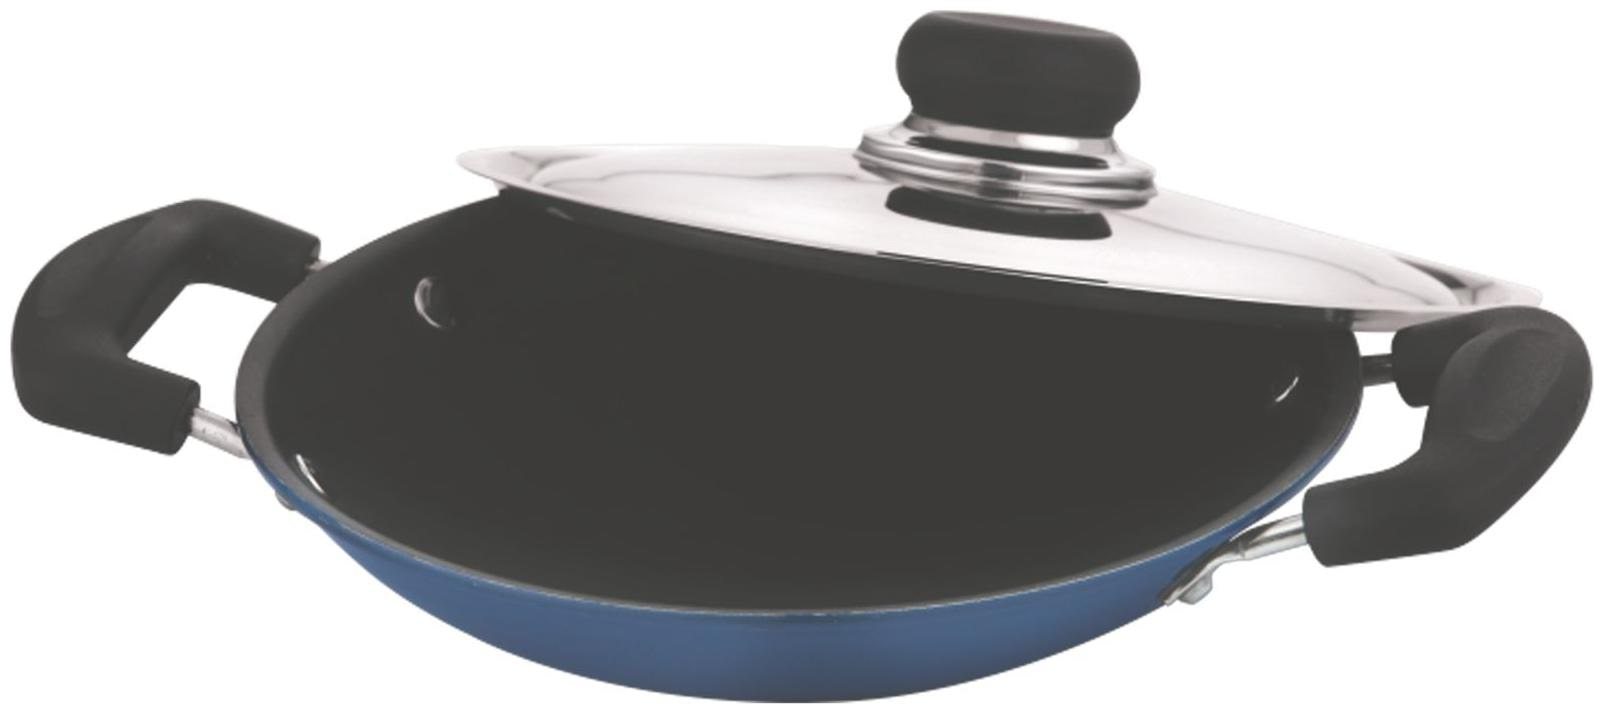 Vinod Cookware 3mm Non Stick Appachetty with Lid, 20 cm, Aluminium by Value Tree Retail